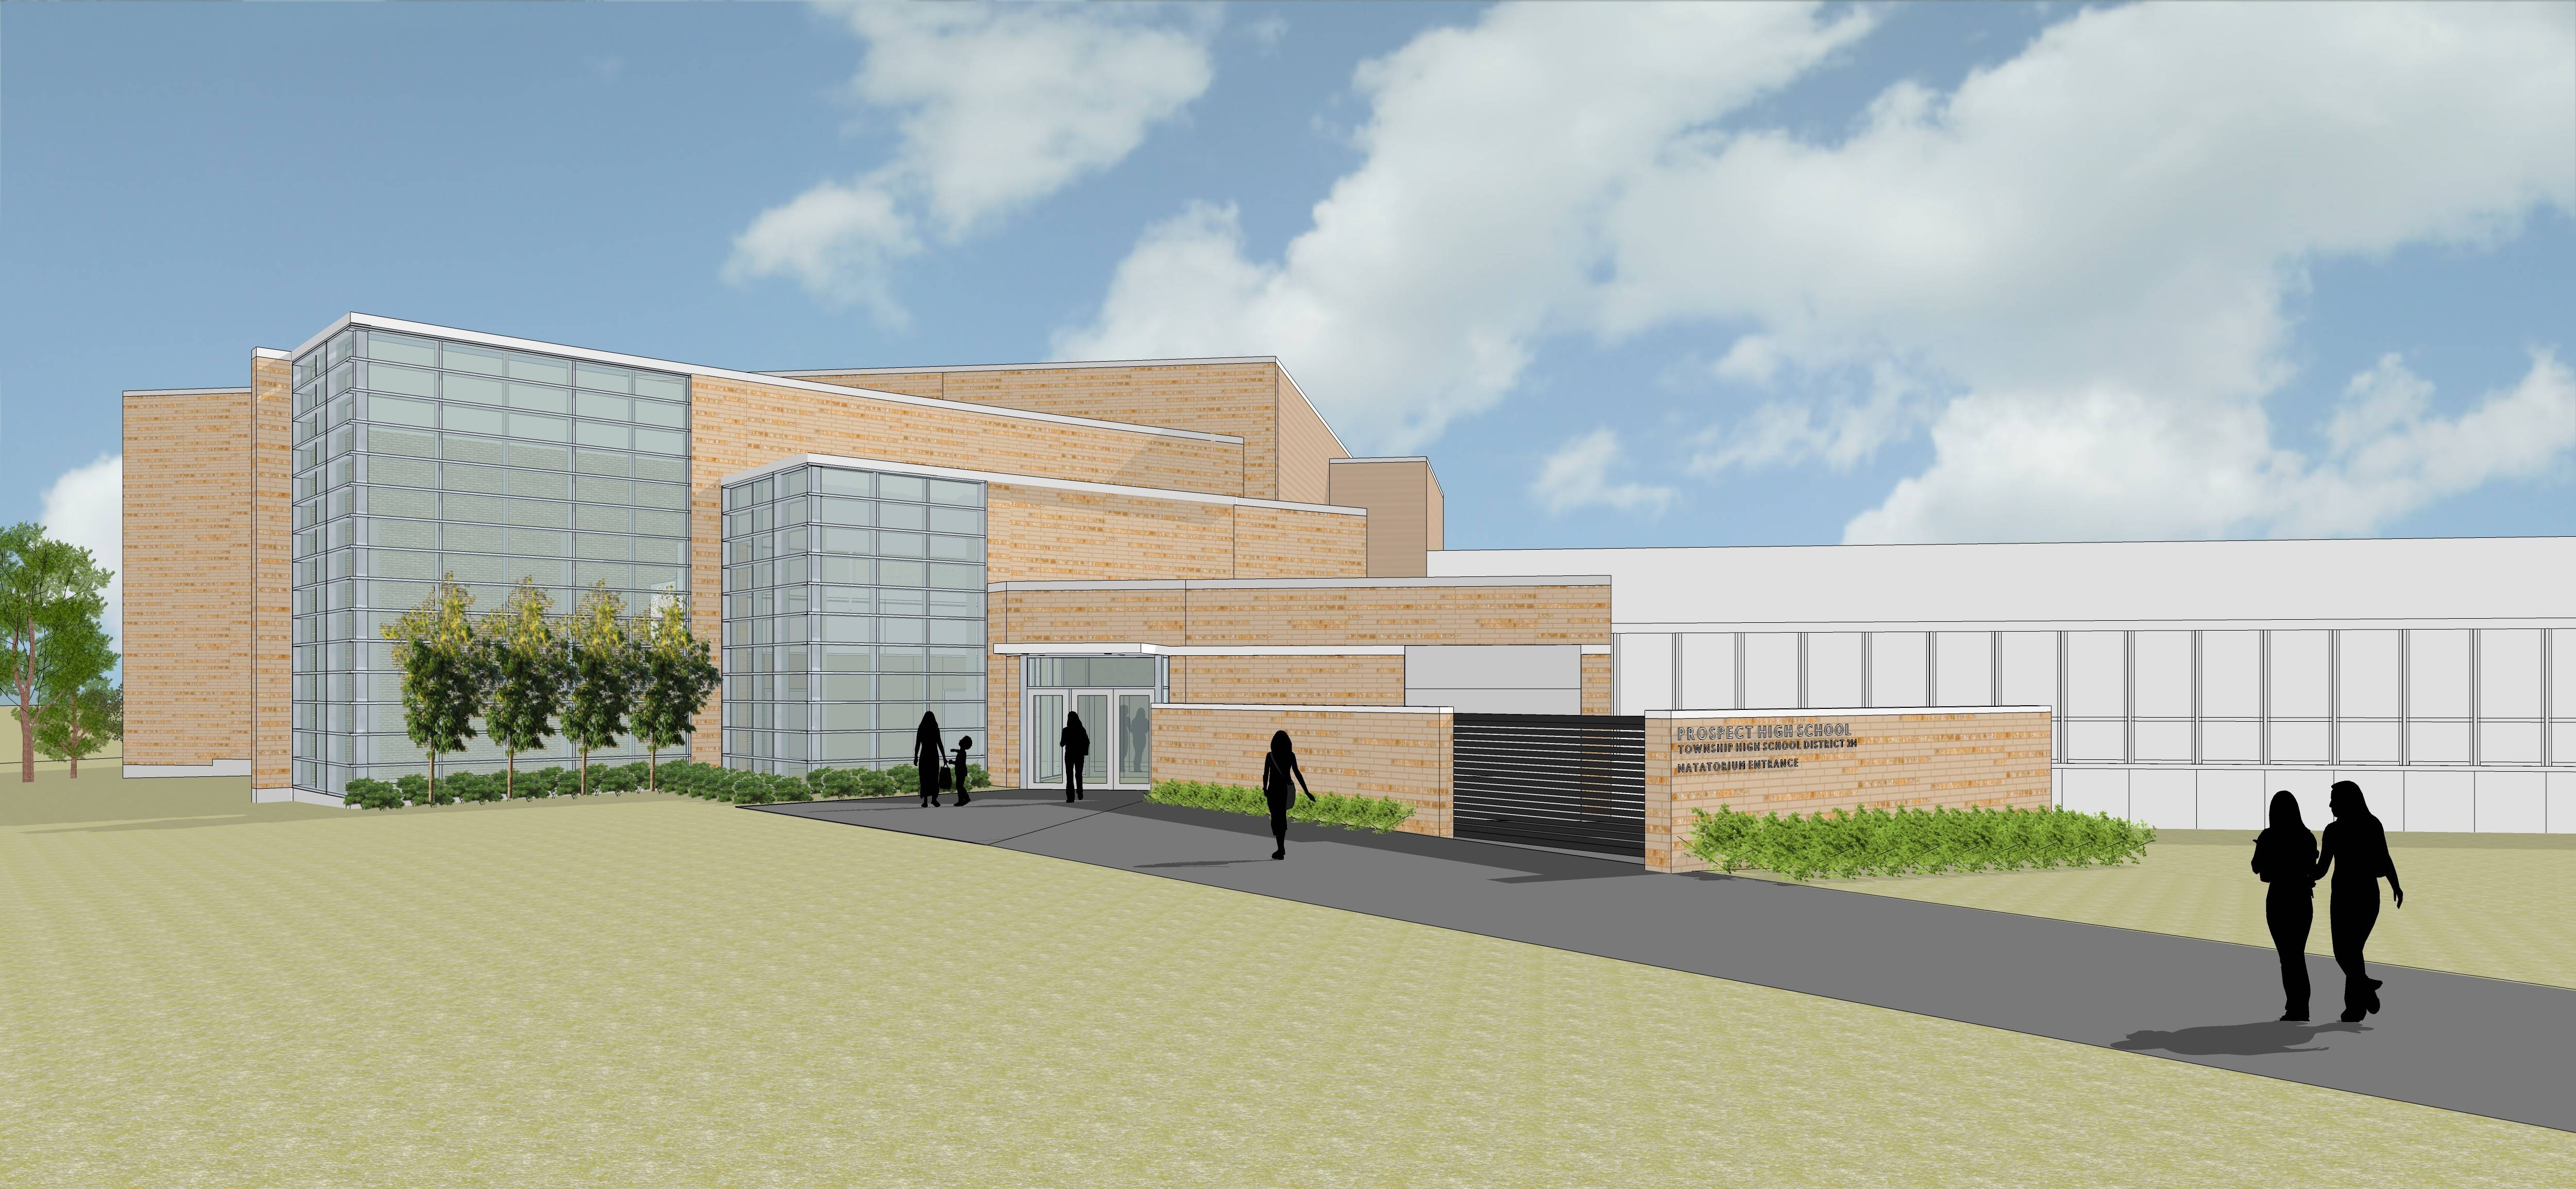 Work underway on Prospect High School's $13 million pool project